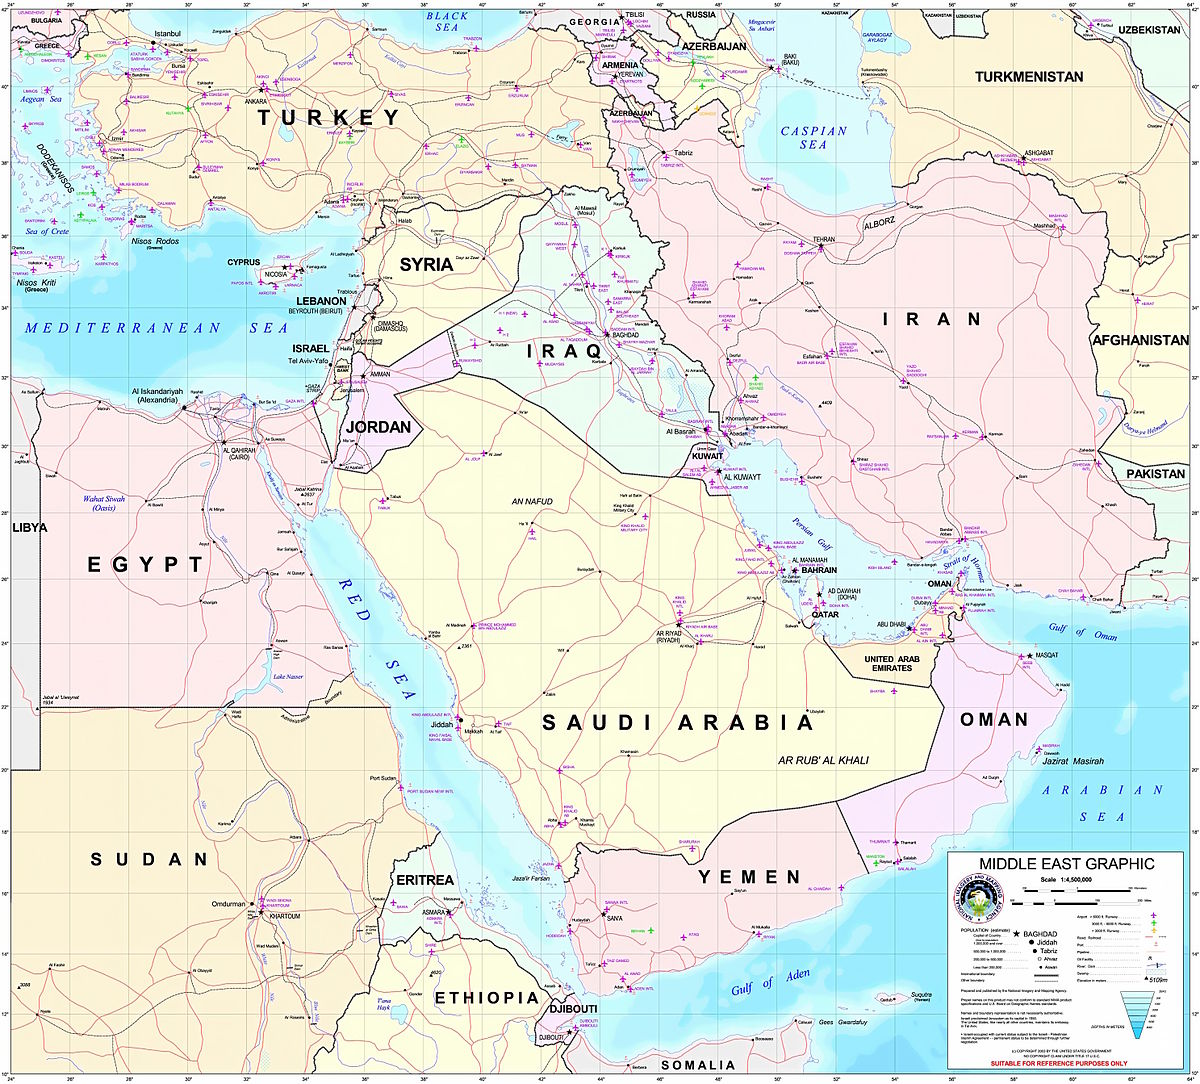 List Of Modern Conflicts In The Middle East Wikipedia - Middle east political map 1900